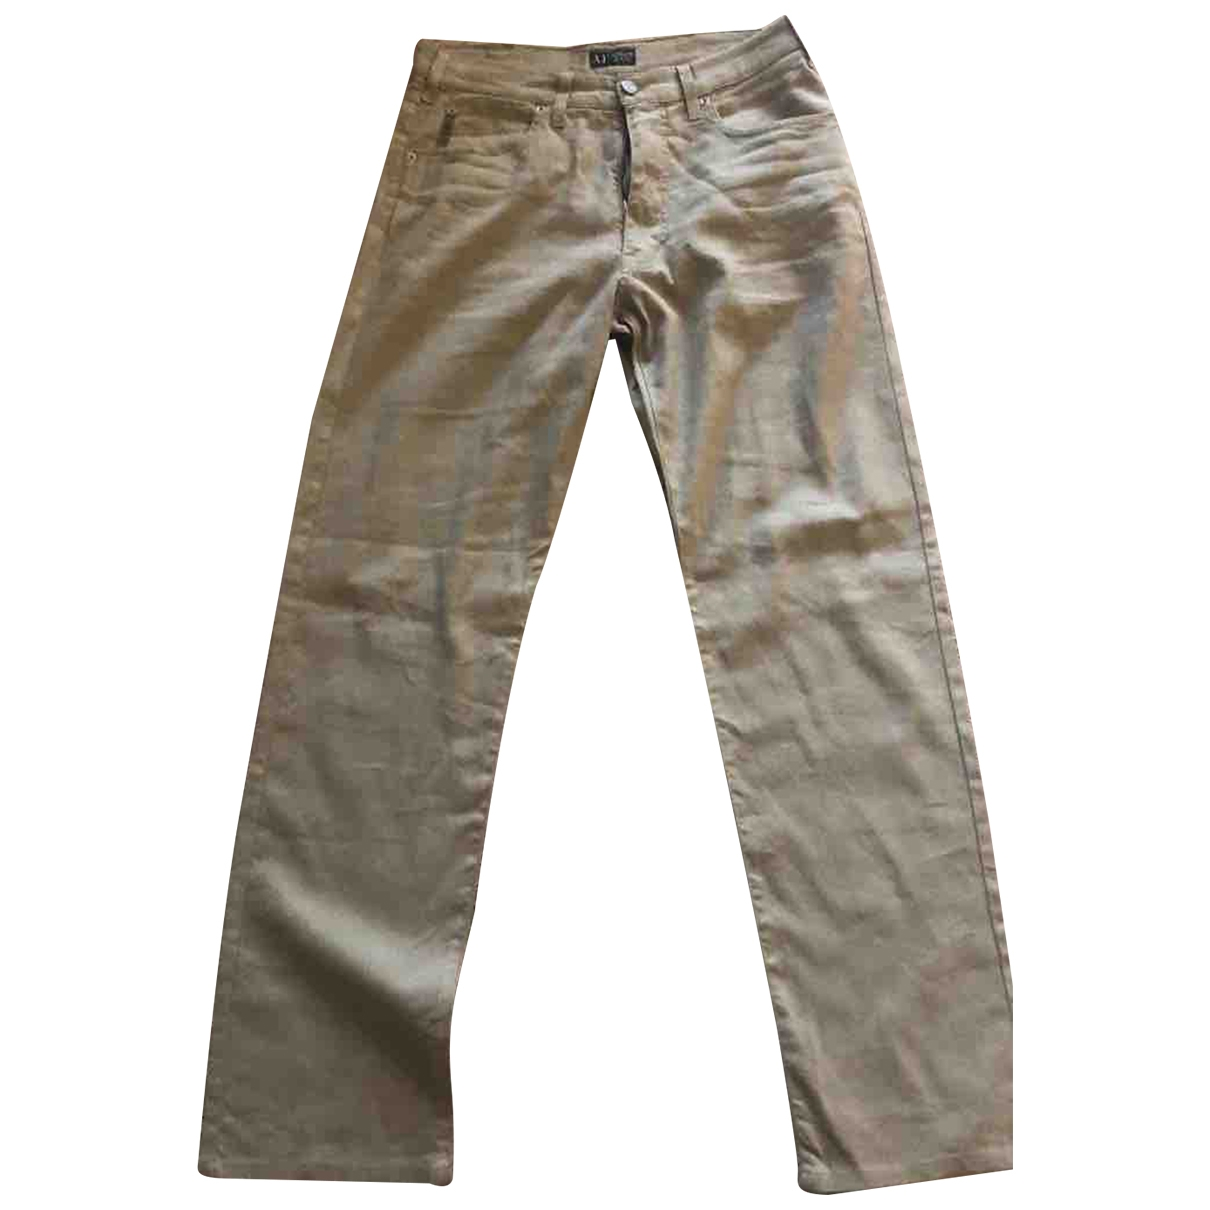 Armani Jeans \N Beige Cotton - elasthane Jeans for Men 30 US